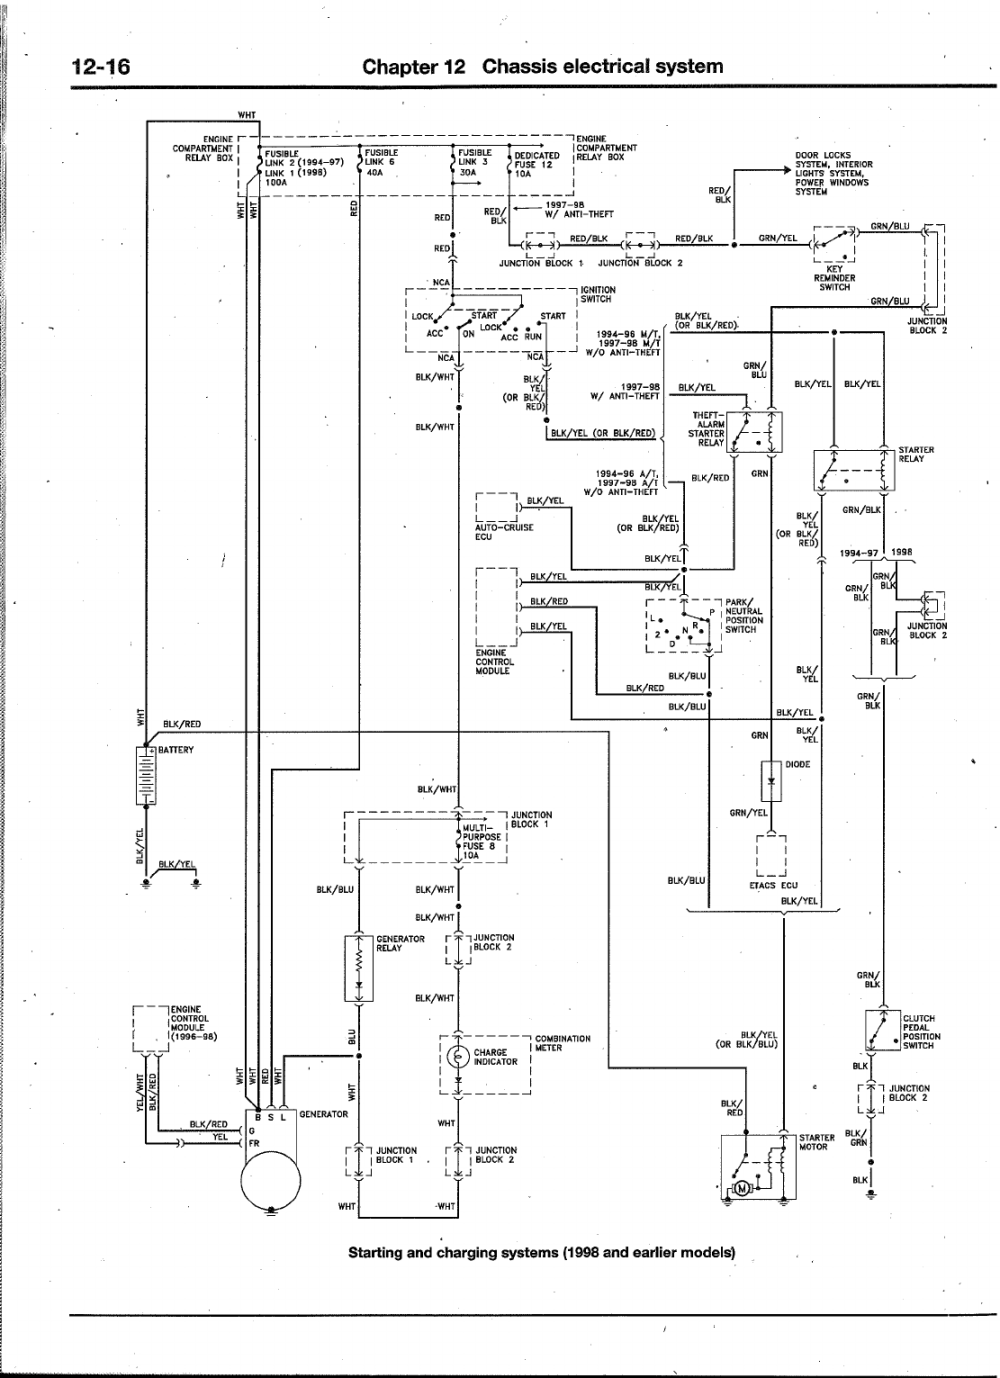 medium resolution of 2001 mitsubishi galant wiring schematic wiring diagram world headlight wiring diagram for 2000 mitsubishi galant